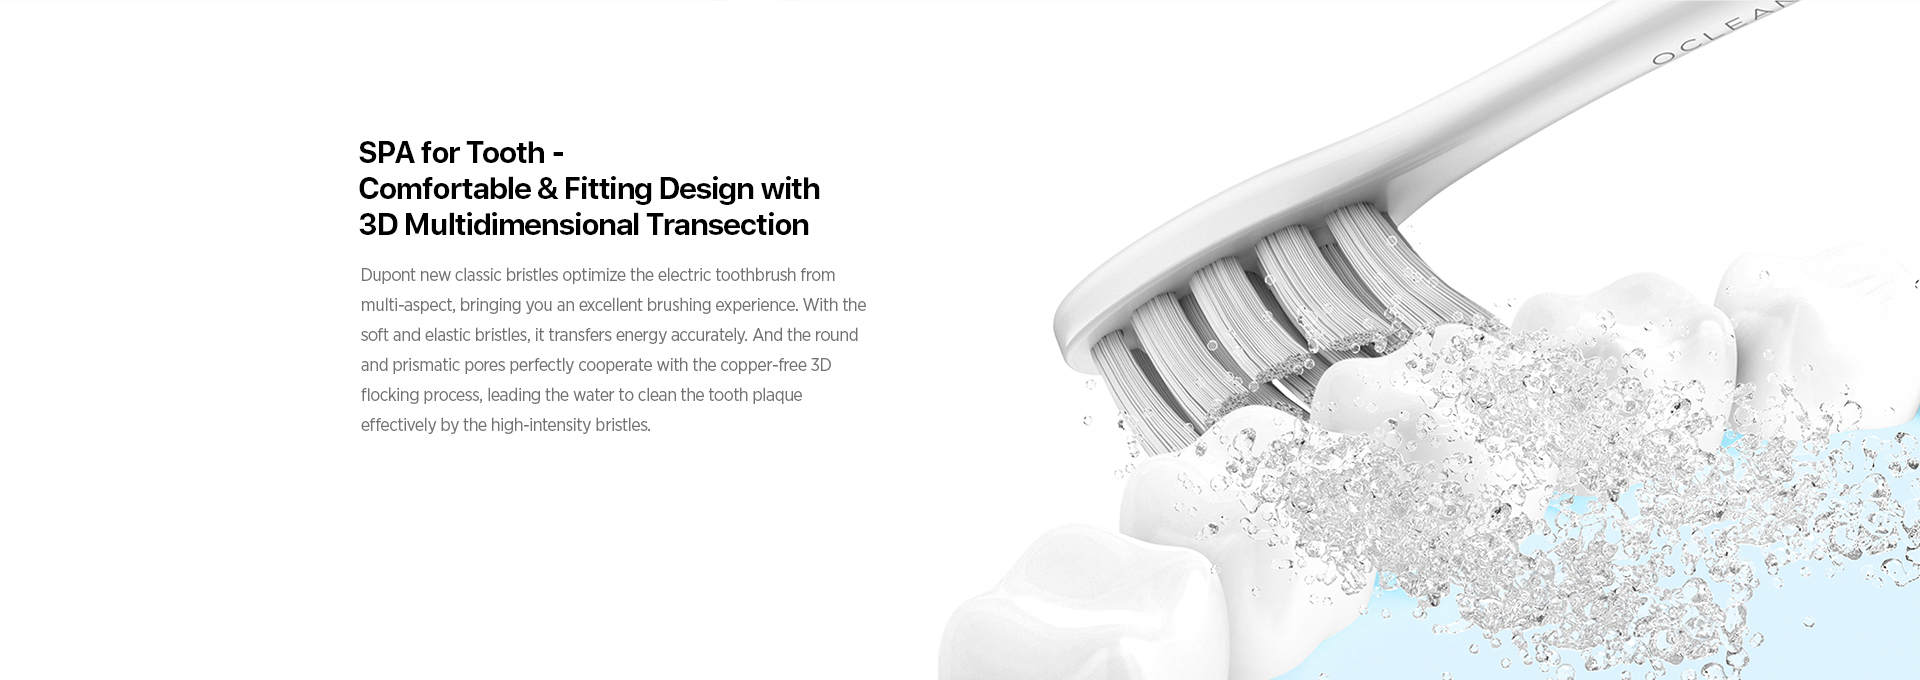 SPA for tooth-comfortable&Fitting Desigh with 3D multidimensional transection